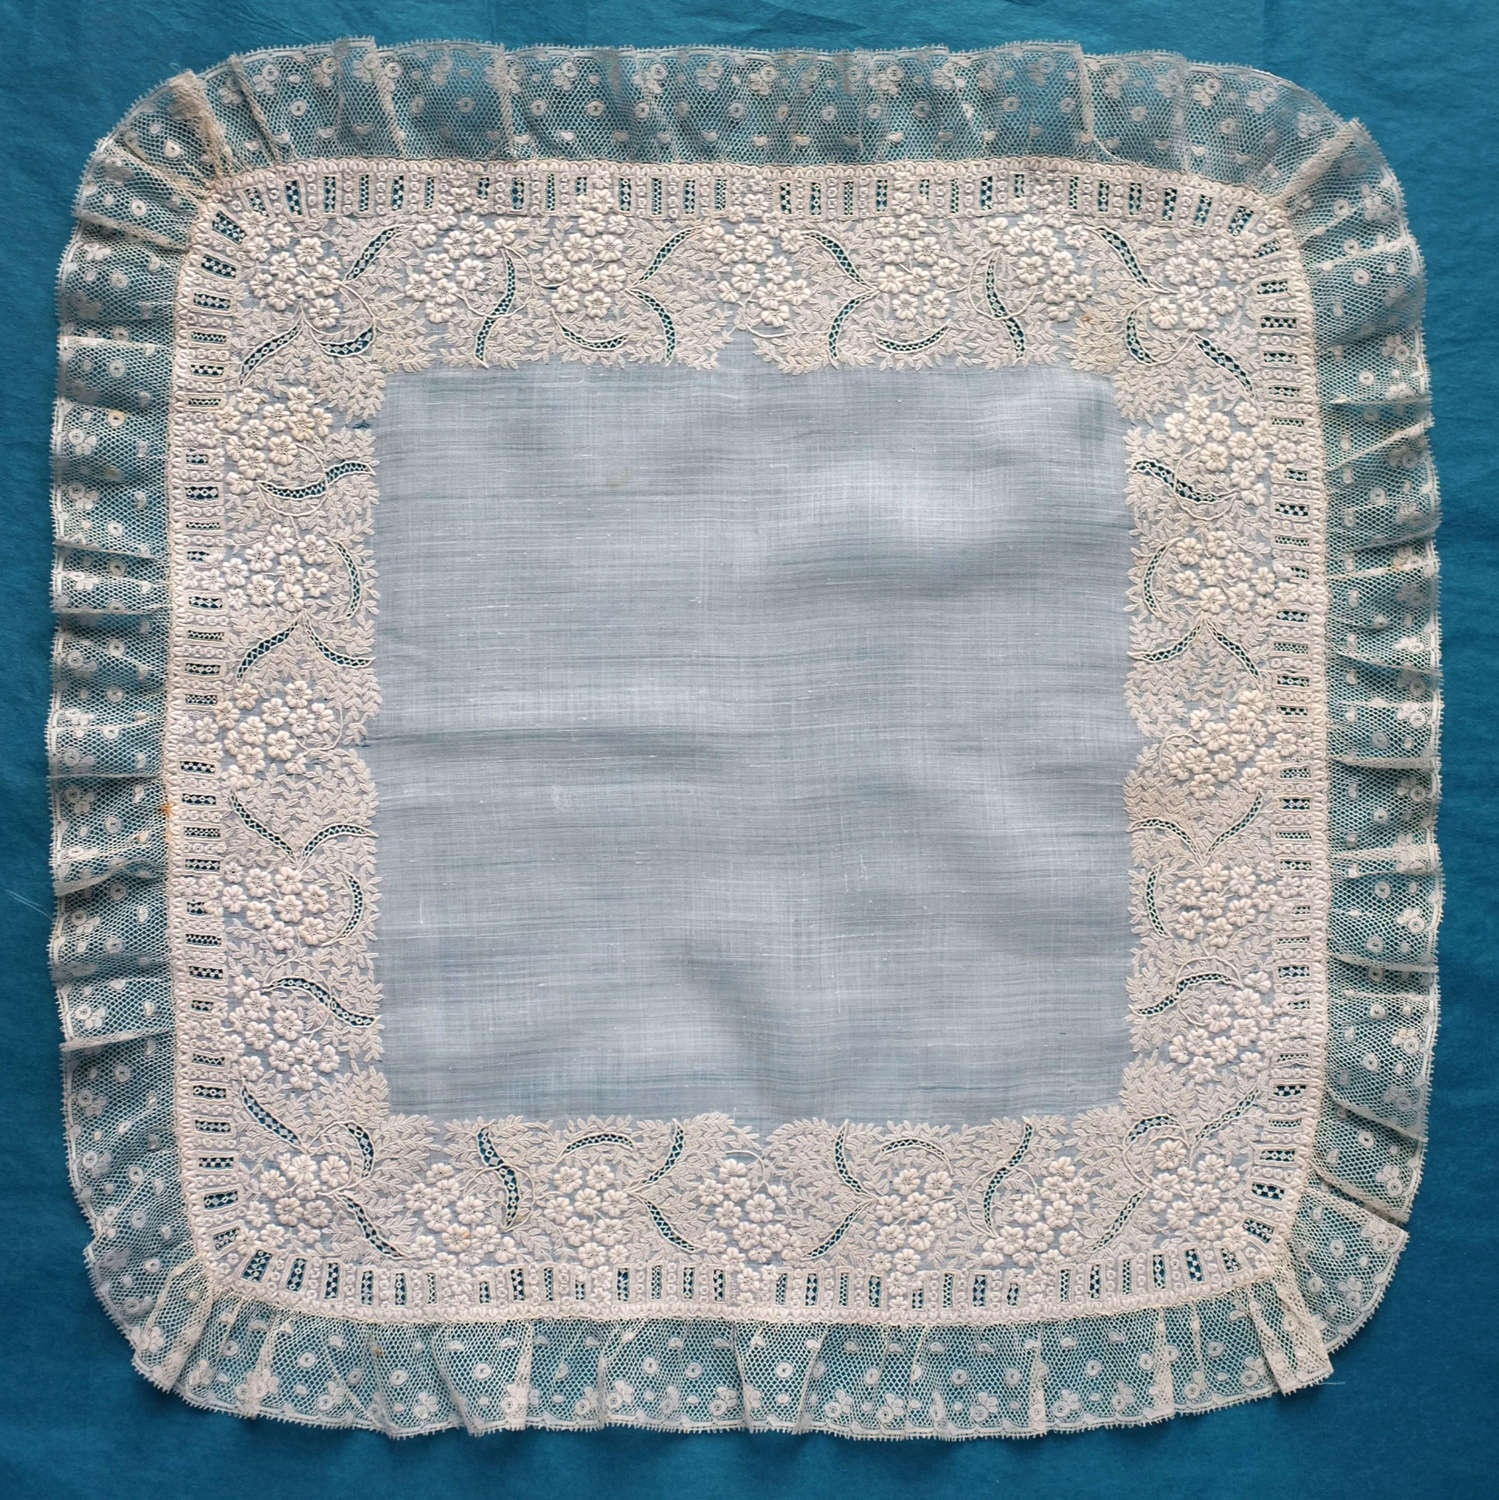 19th Century Embroidered Handkerchief with Flower and Leaf Border